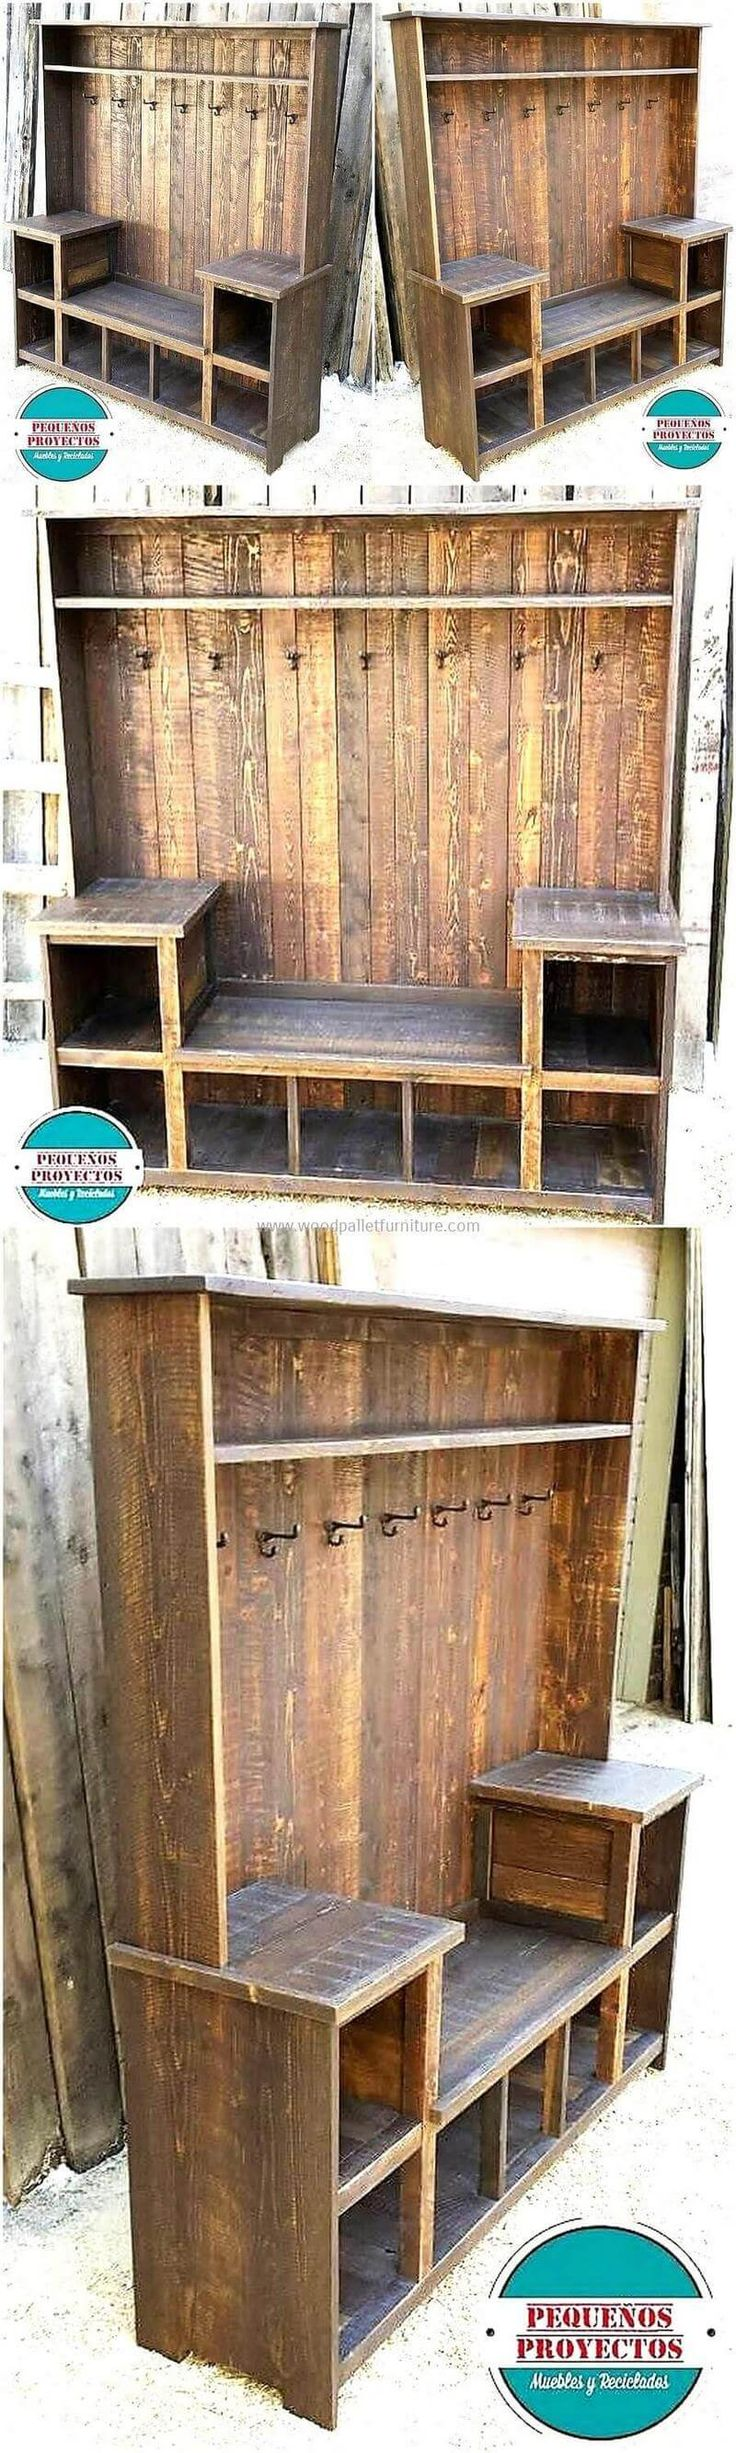 Let's reshape the raw wooden pallets present at your area and transform them into few appealing and valuable recycled pallets wood wardrobe plans. These recycled wooden pallets projects are not only less expensive to construct but also have an eye-catching display that will attract everyone present at your home. Retransforming is a healthy activity that will keep you busy as well as healthy in your leisure time. Craft this recycled pallets wooden wardrobe with clothes hangers storage cabinet…